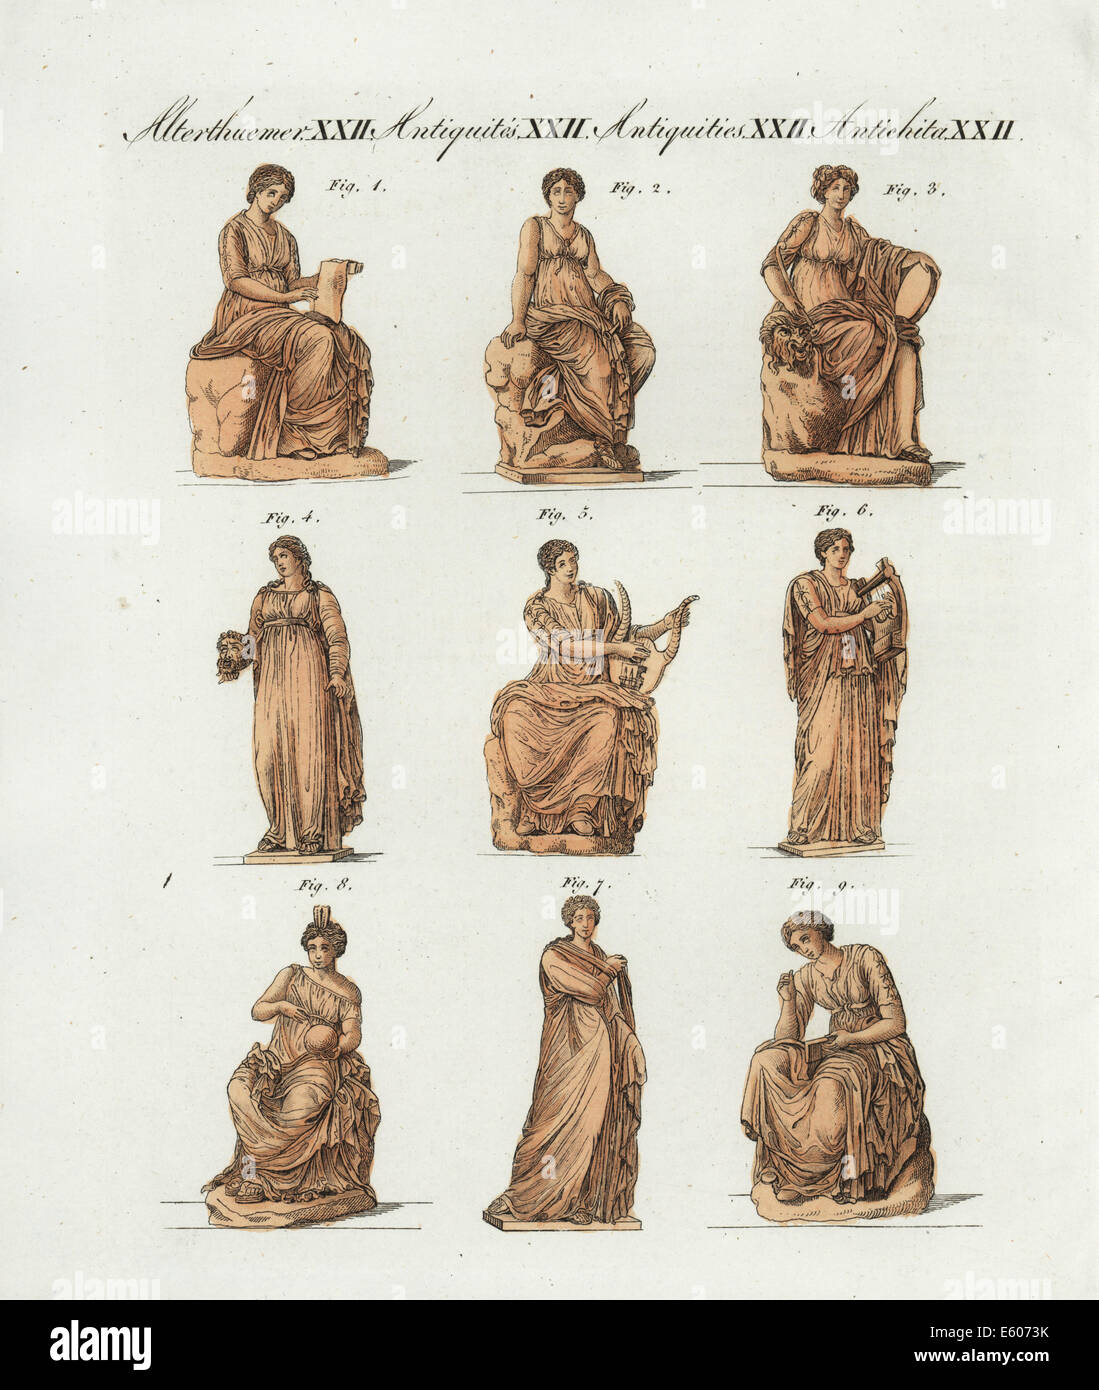 Greek and Roman gods, the Muses. - Stock Image